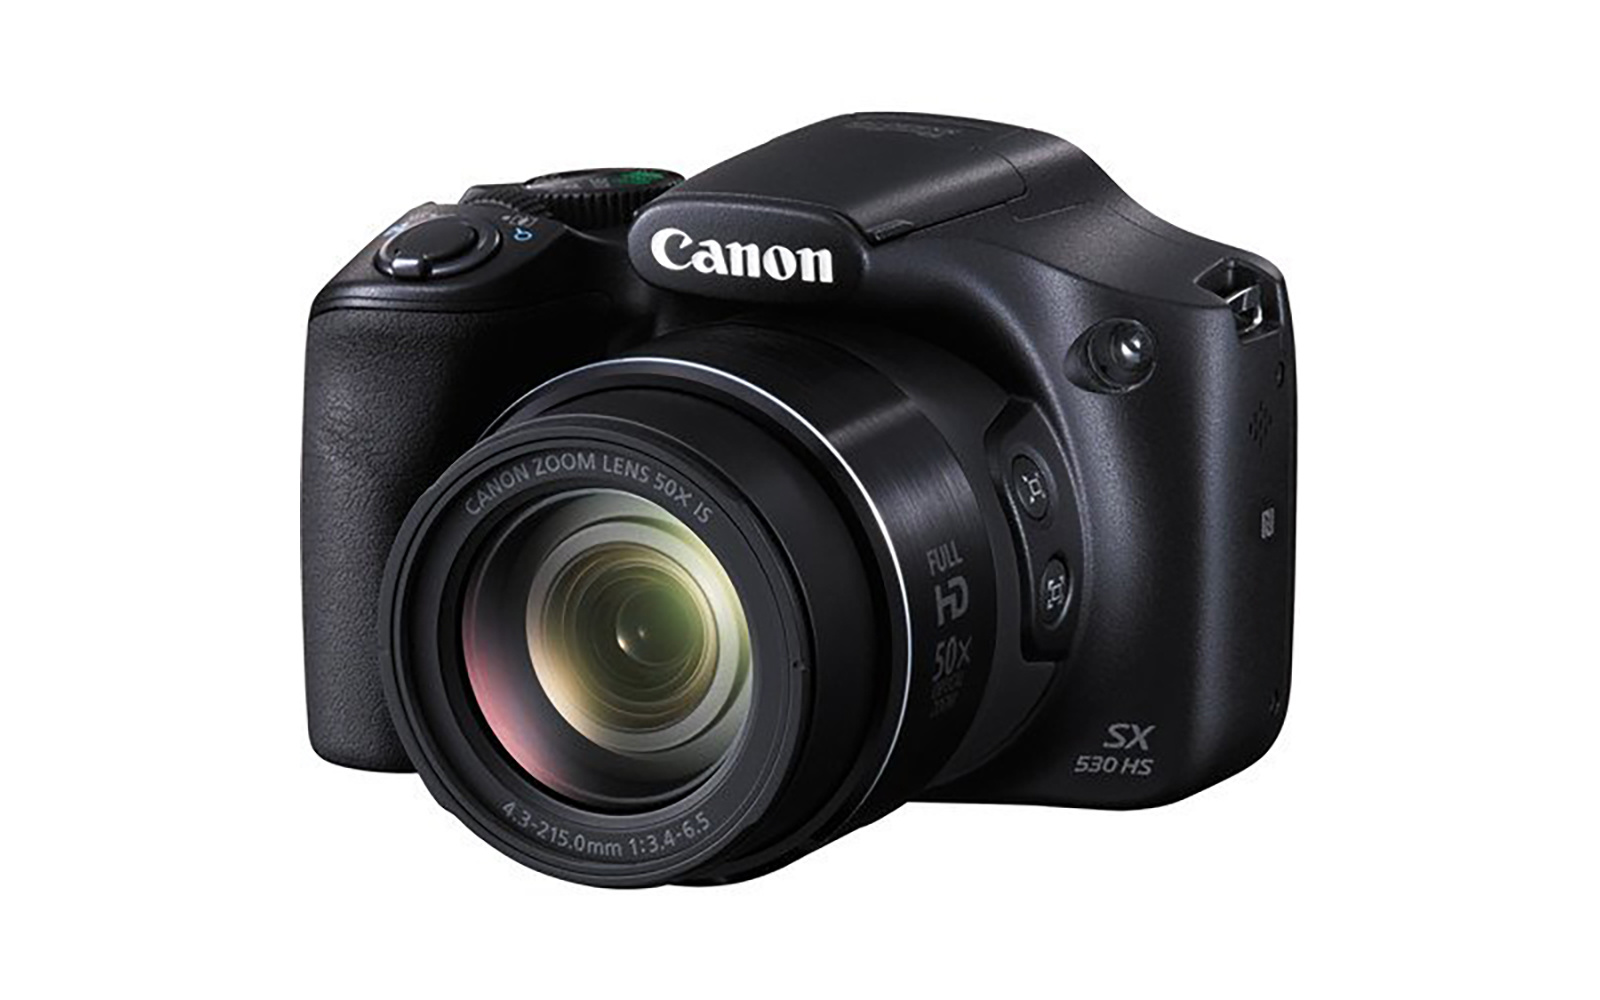 Best Affordable Travel Camera: Canon PowerShot SX530HS